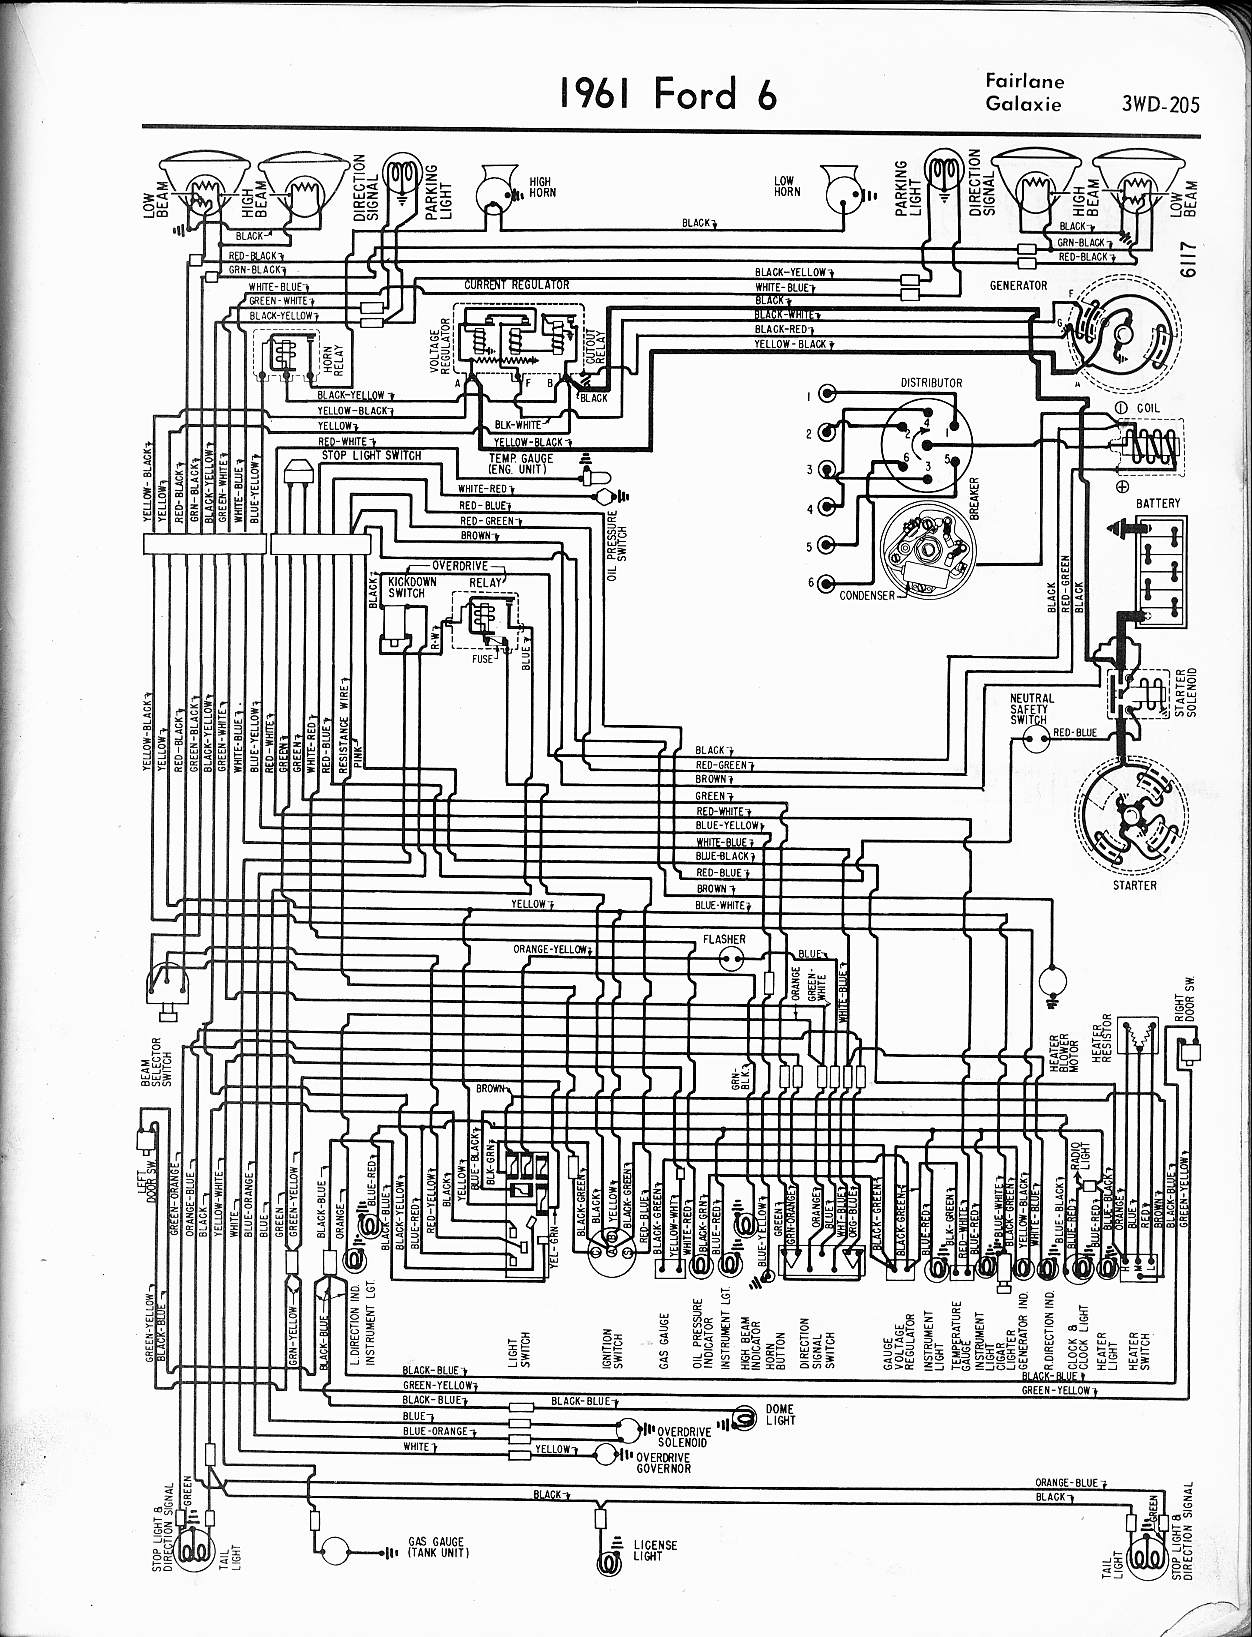 1961 ford skyliner horn: electrical problem 1961 ford ... 1961 ford econoline wiring diagram #1